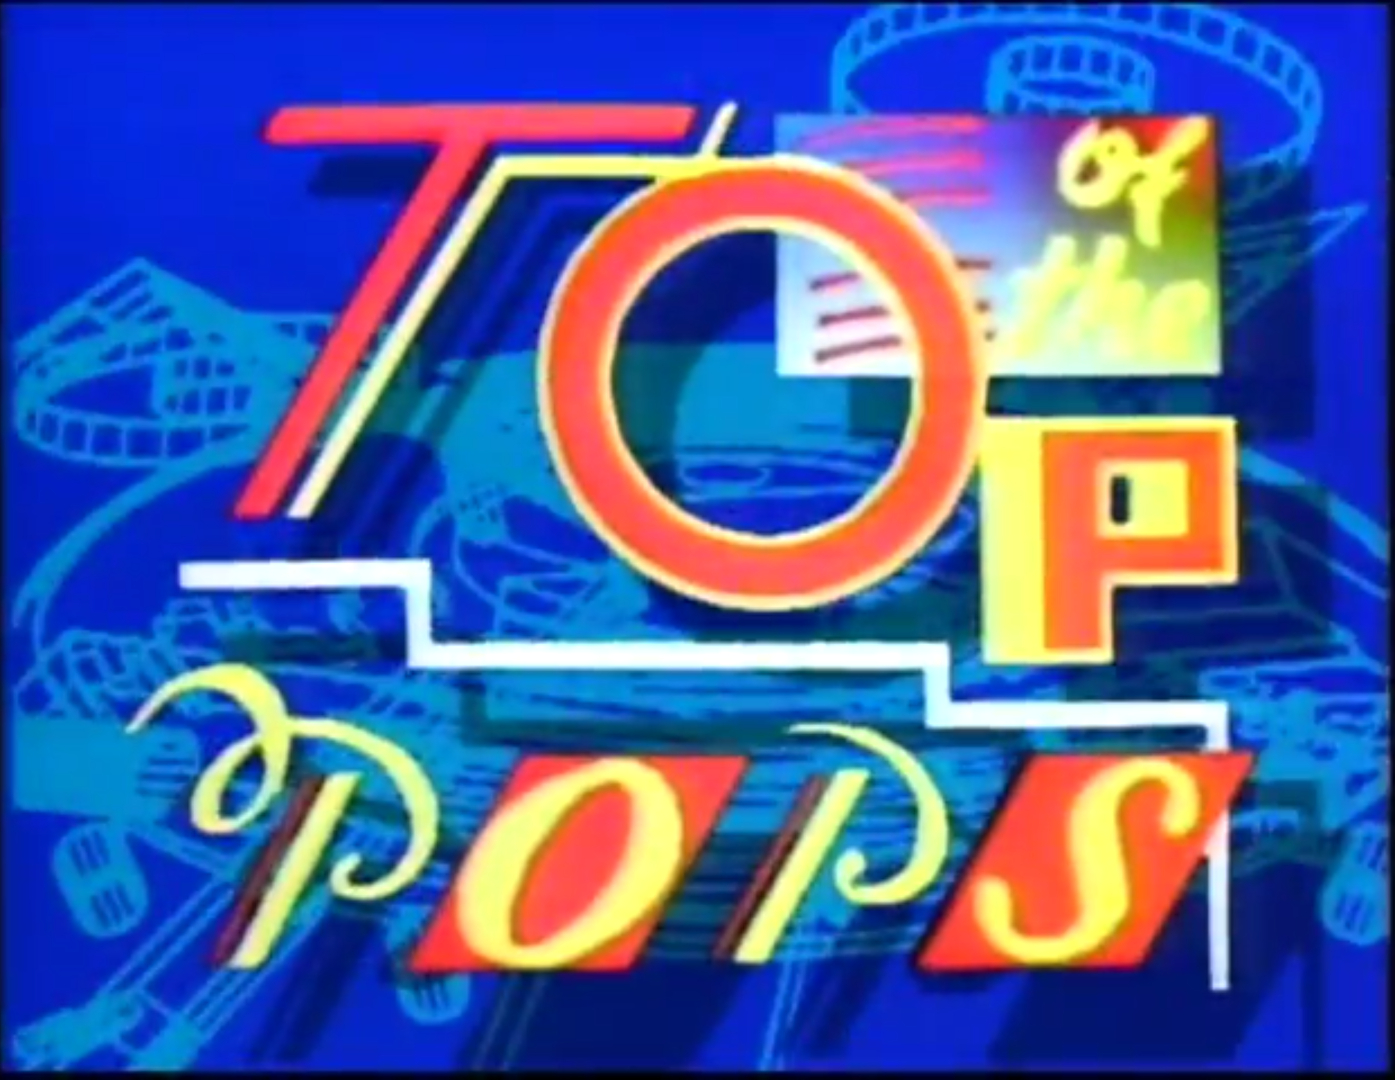 File:Top of the pops logo late 1980's and early 1990's.jpg